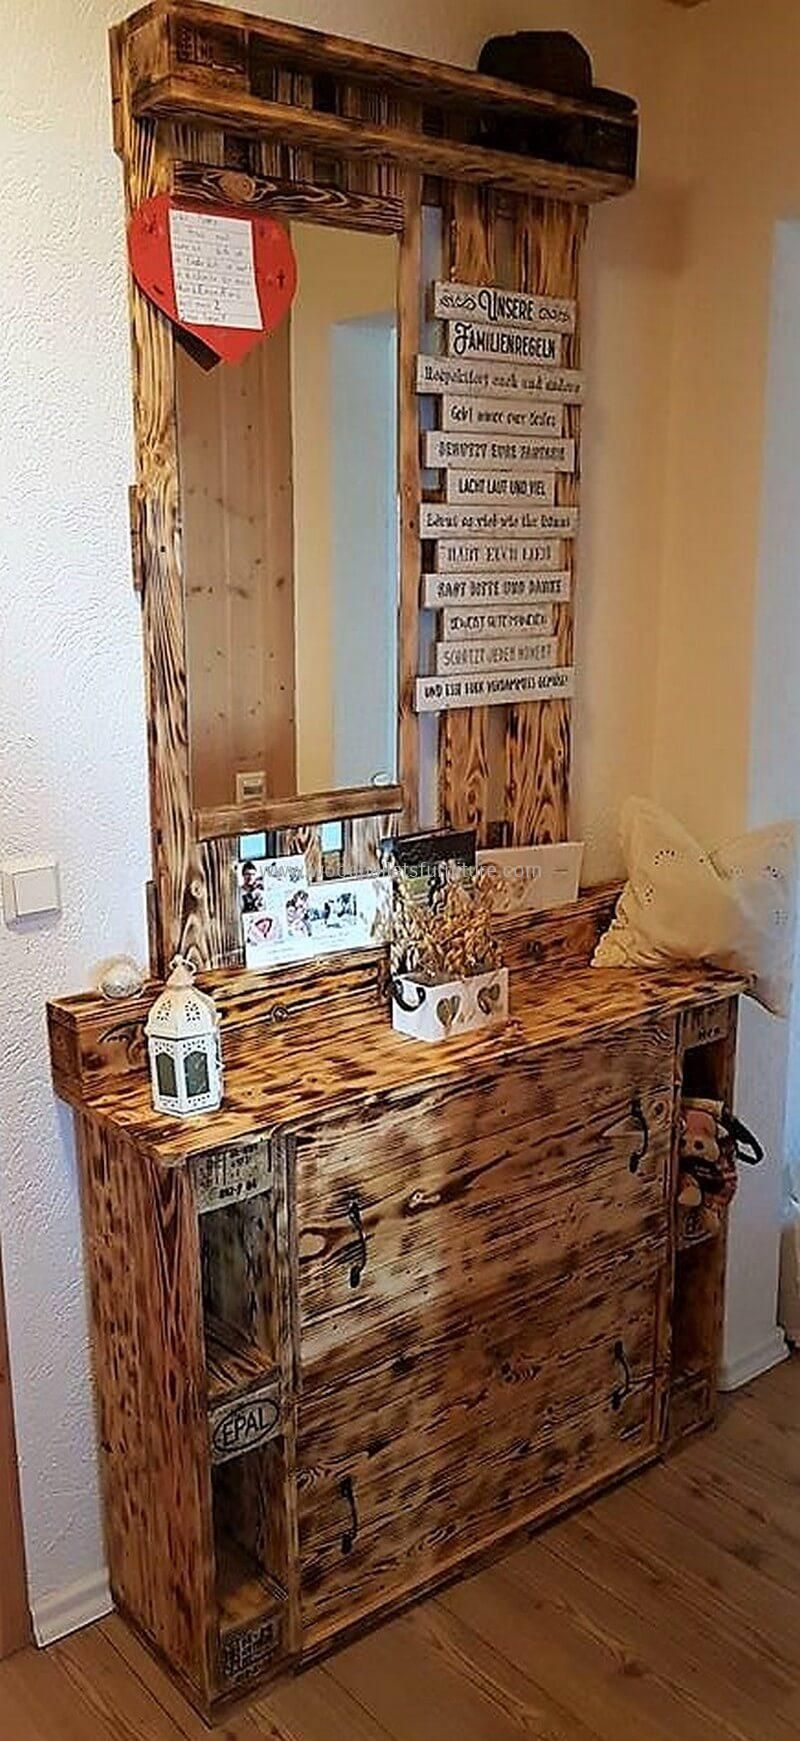 Original Diy Ideas For Wooden Pallets Recycling Wood Pallet Furniture Wood Pallet Projects Wood Pallets Pallet Crafts